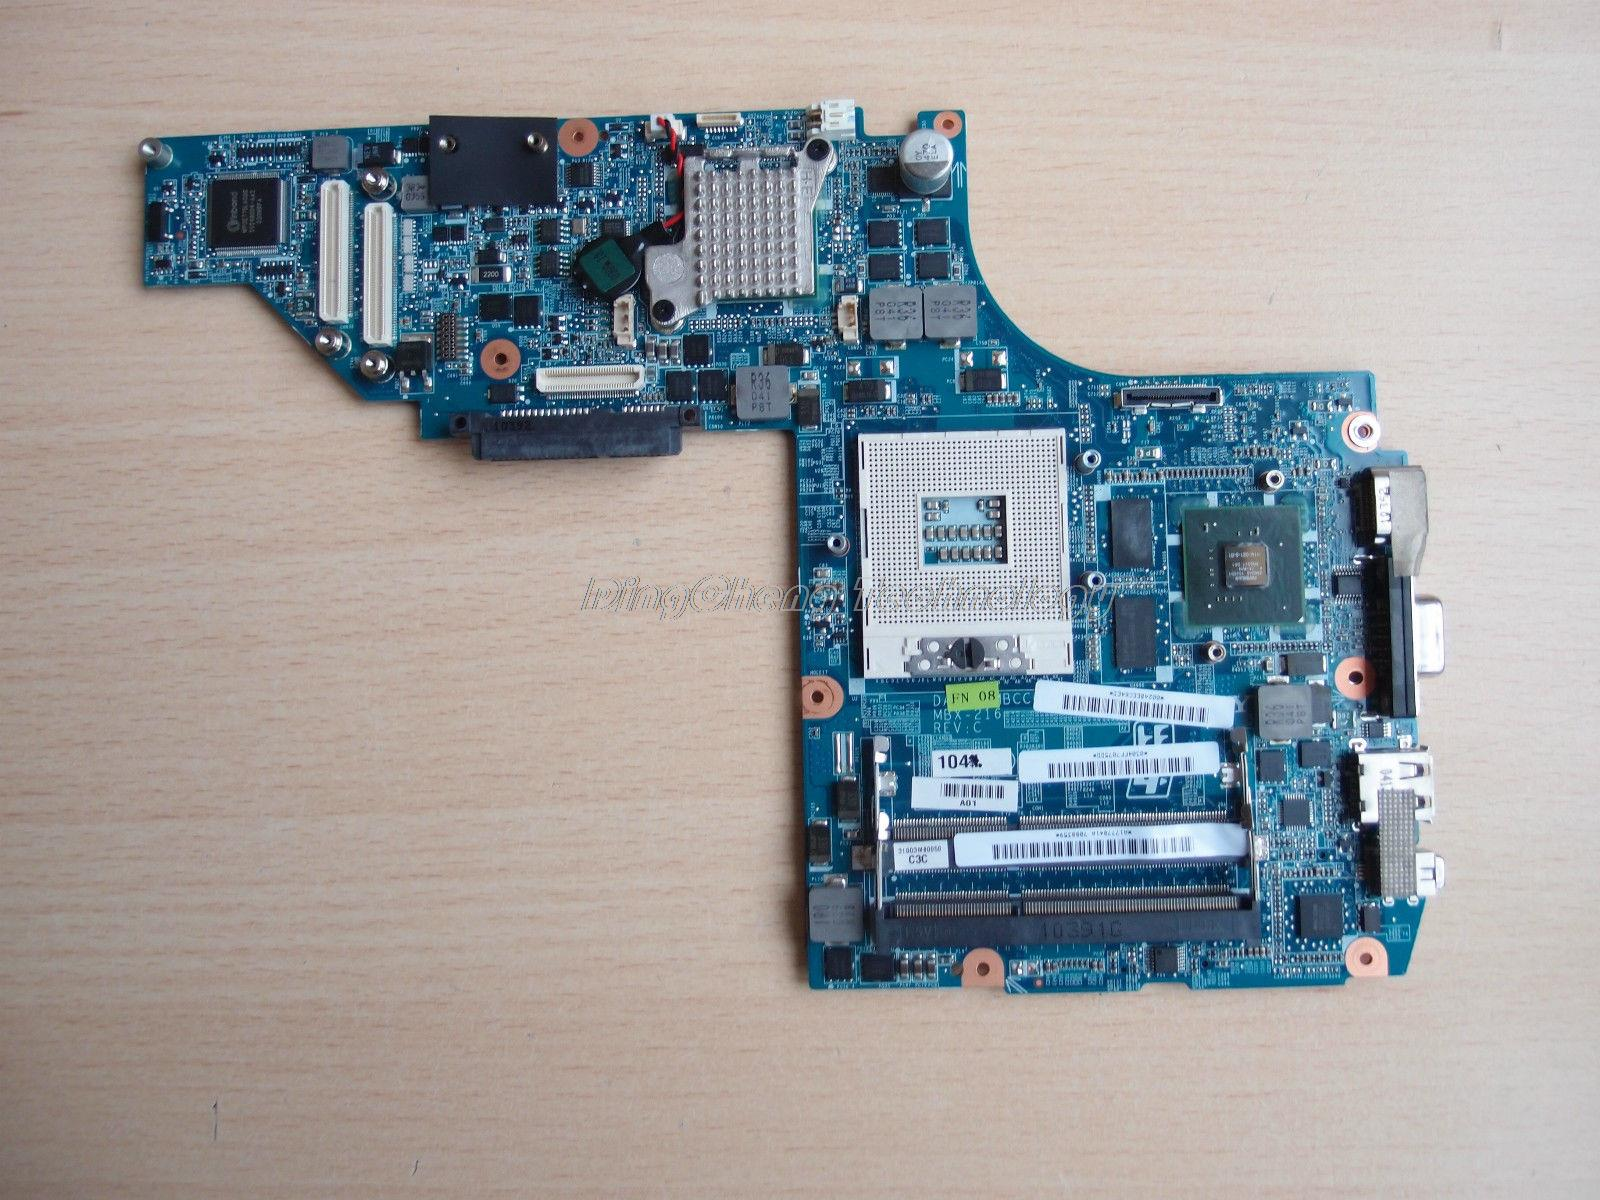 SHELI MBX 216 laptop Motherboard For Sony VPS111FM MBX-216 A1795846A DAGD3AMBCC0 for intel cpu with non-integrated graphics card sheli mbx 143 laptop motherboard for sony mbx 143 ms04 m b a1142569a 1p 0058100 8012 for intel cpu with integrated graphics card